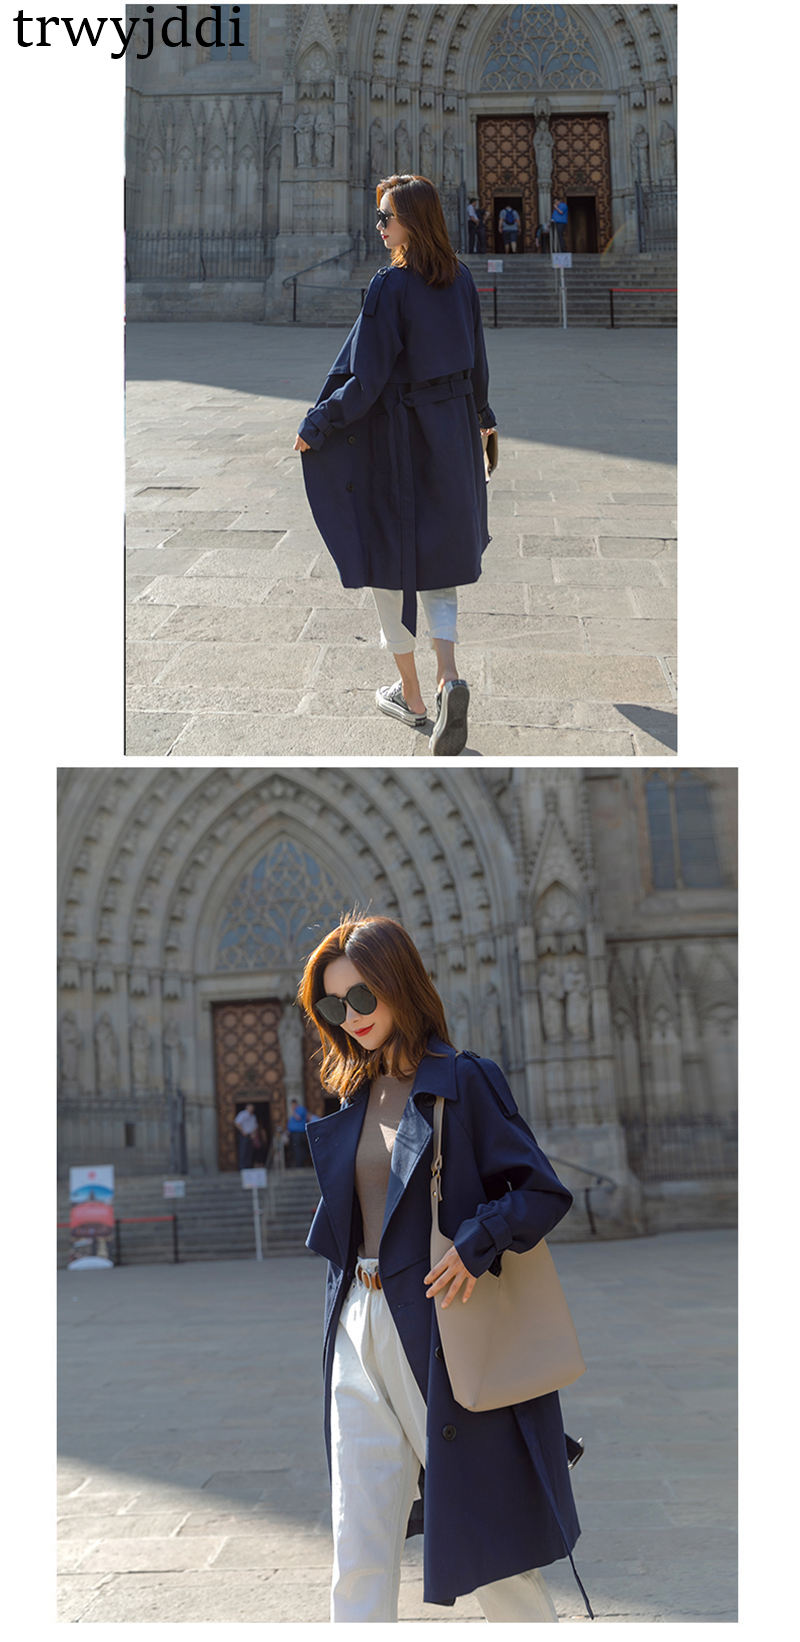 Fashion Windbreaker Coats Long section 19 New Spring Autumn Coat Women Trench Coats Korean Loose Casual Ladies Outerwear N402 13